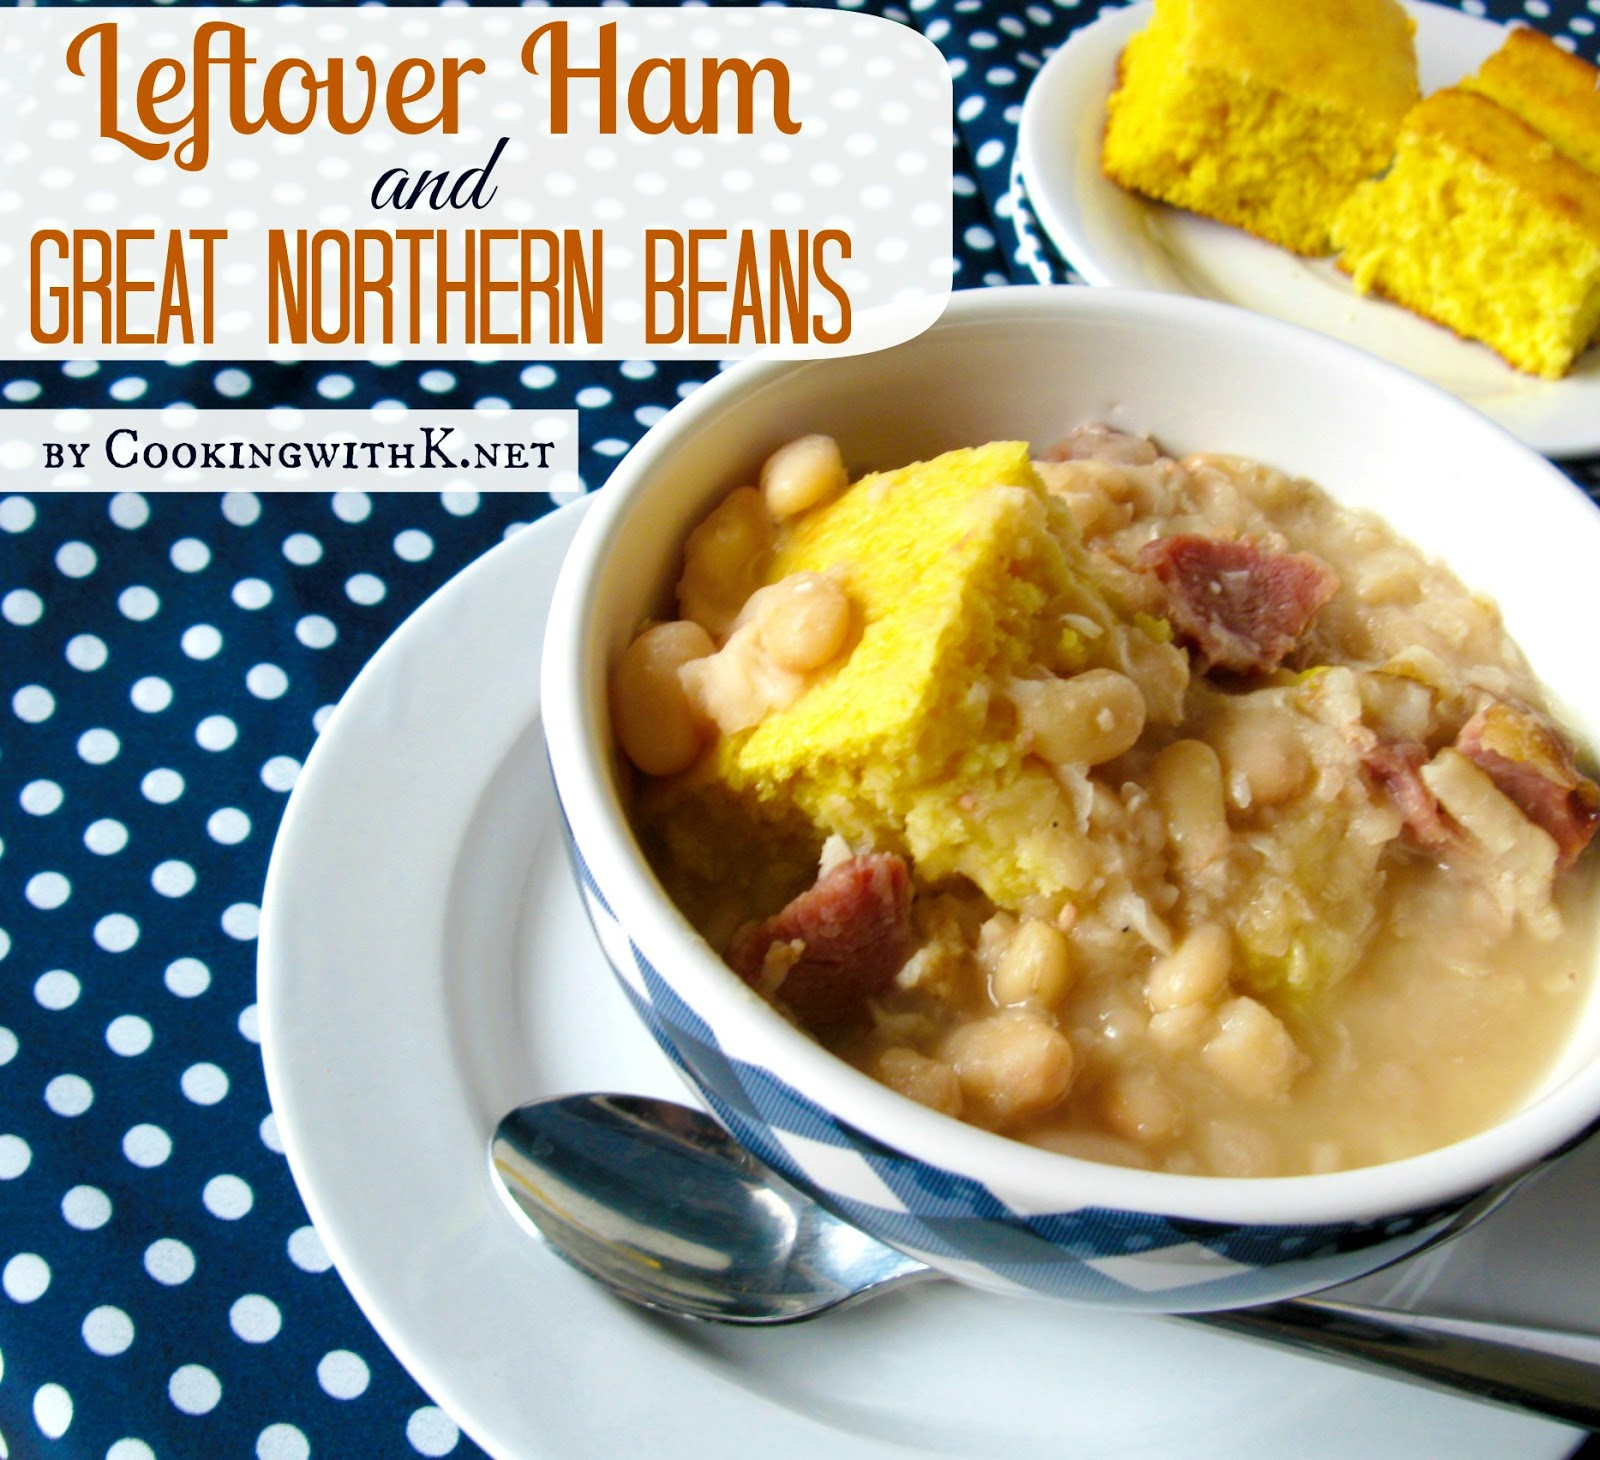 Leftover Ham and Great Northern Beans